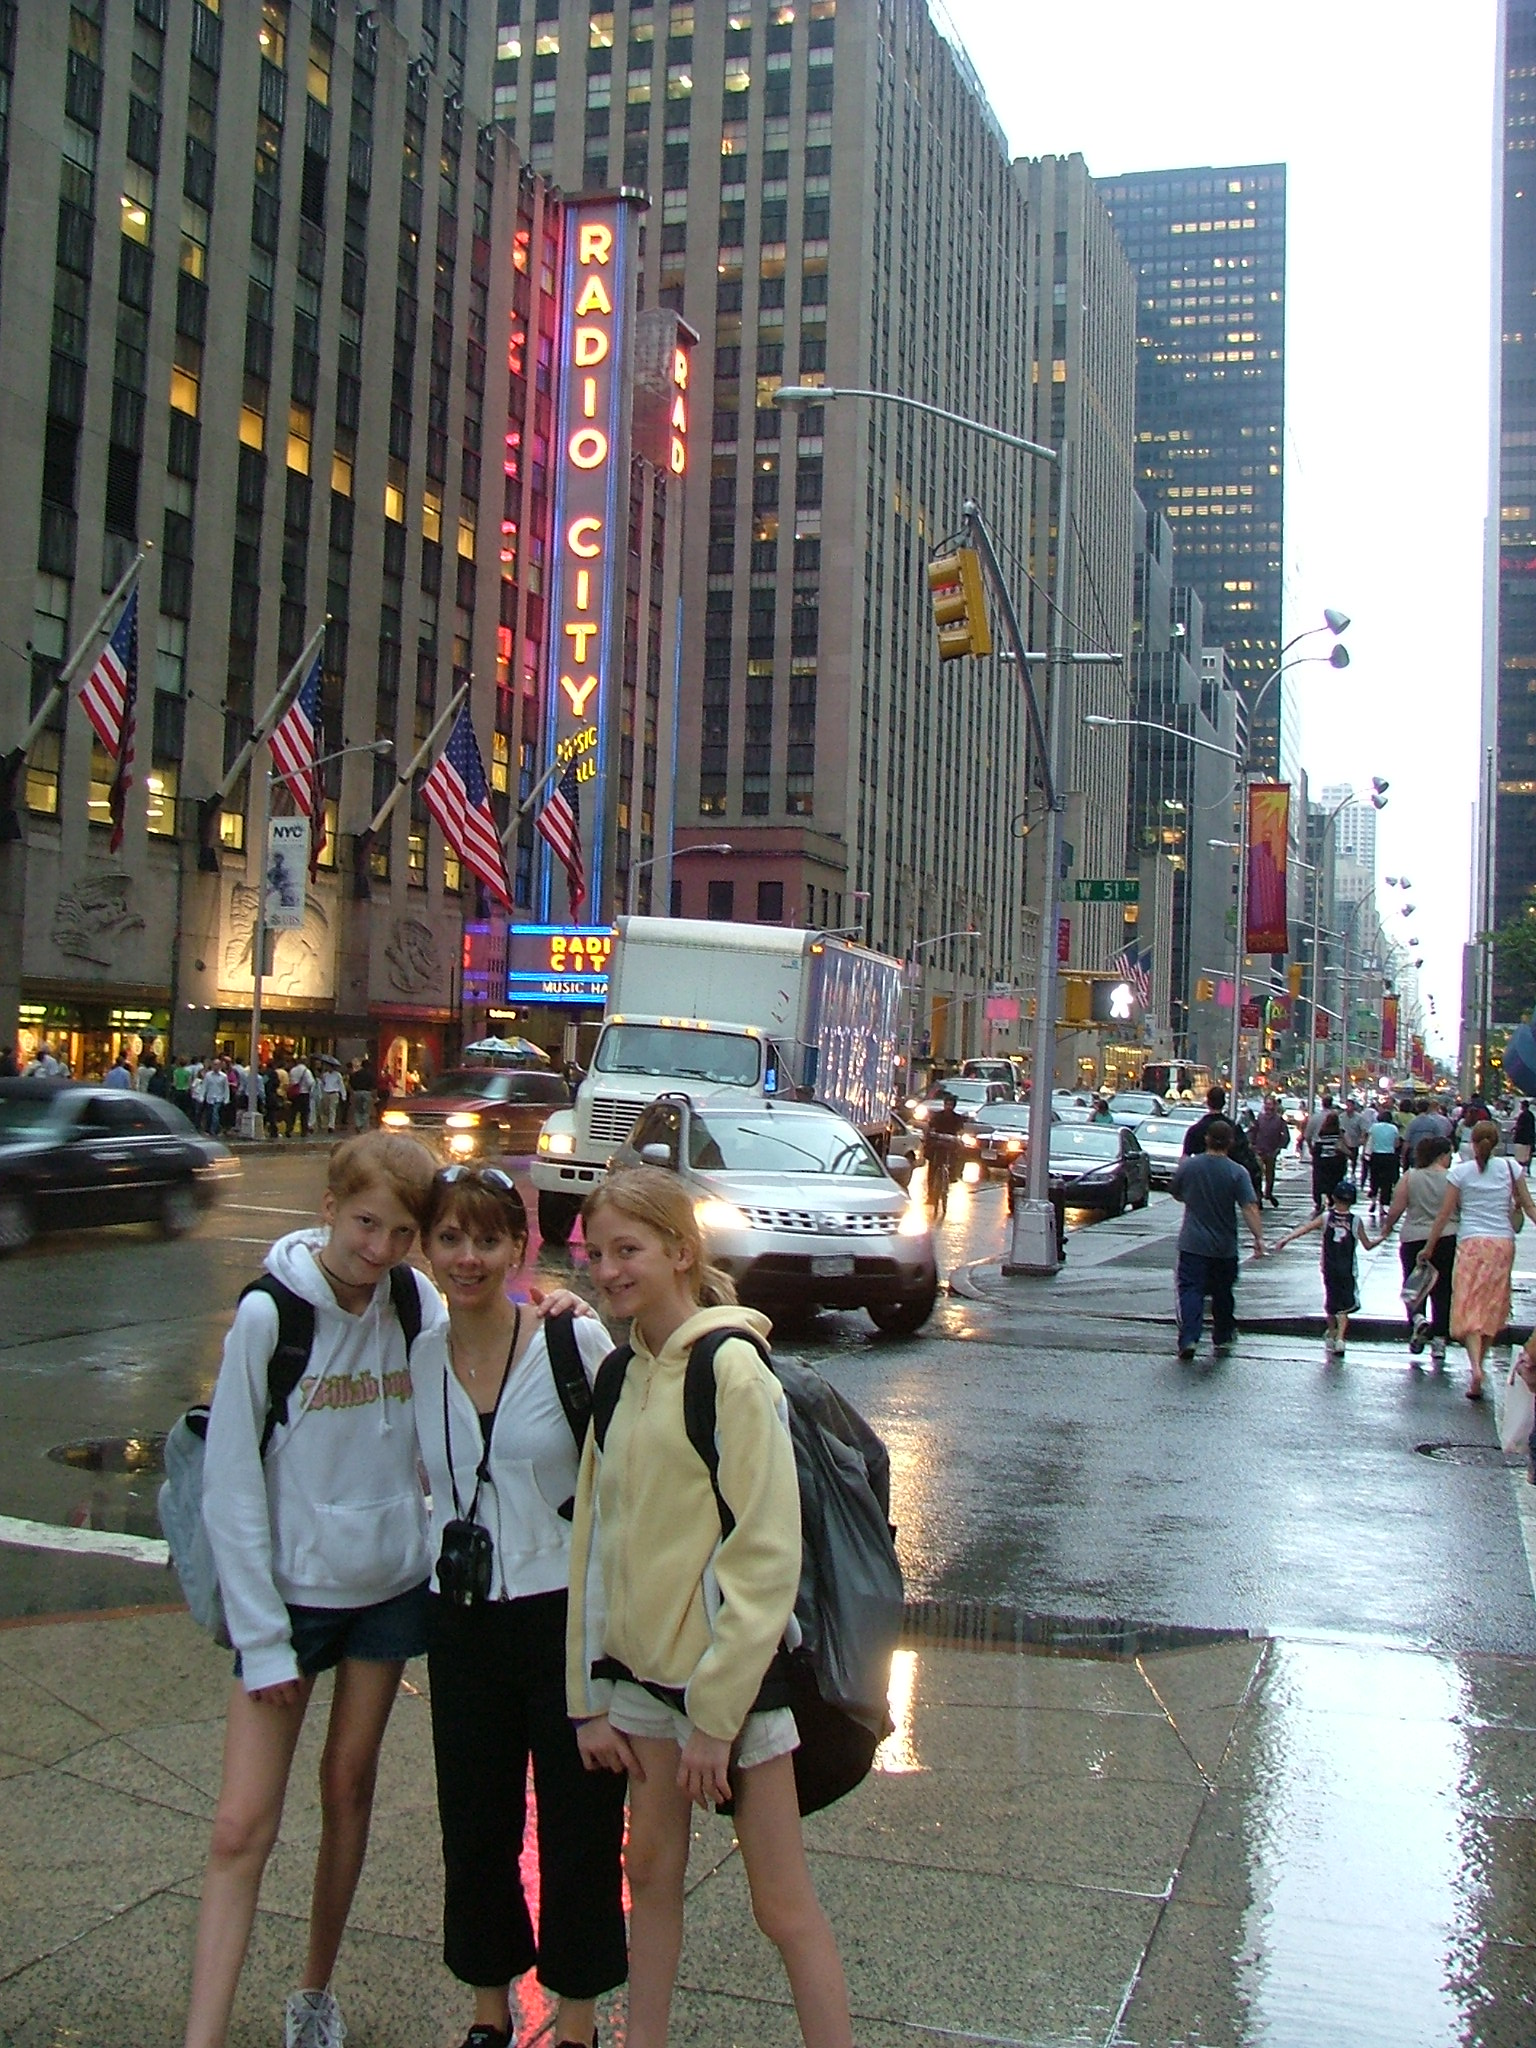 This is me (White hoodie. Notice my knees as the biggest part of my legs), Leslie, and my little sister (Yellow hoodie. Also notice the knees.) in New York enjoying life even in shorts (we seriously hated our legs and we never thought we looked like we did in pictures.).